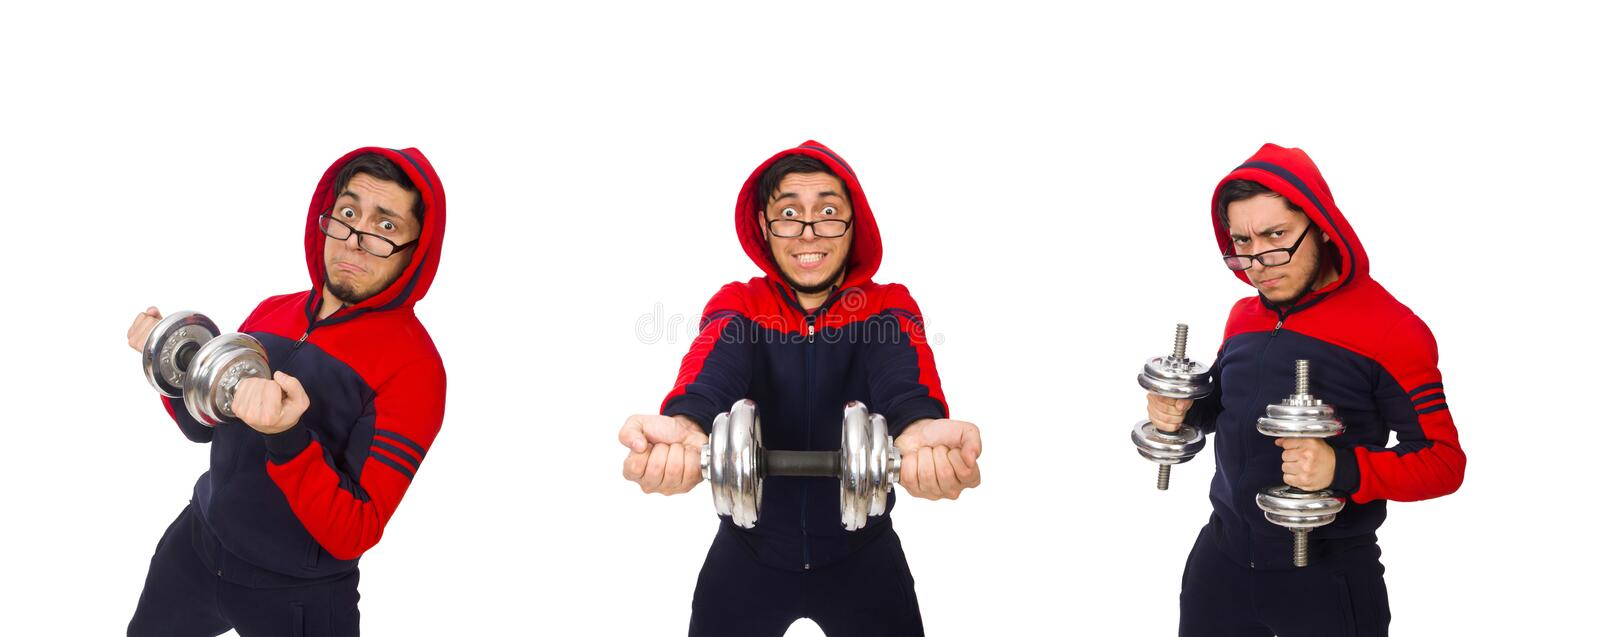 Young man wearing sport costume isolated on white royalty free stock photo